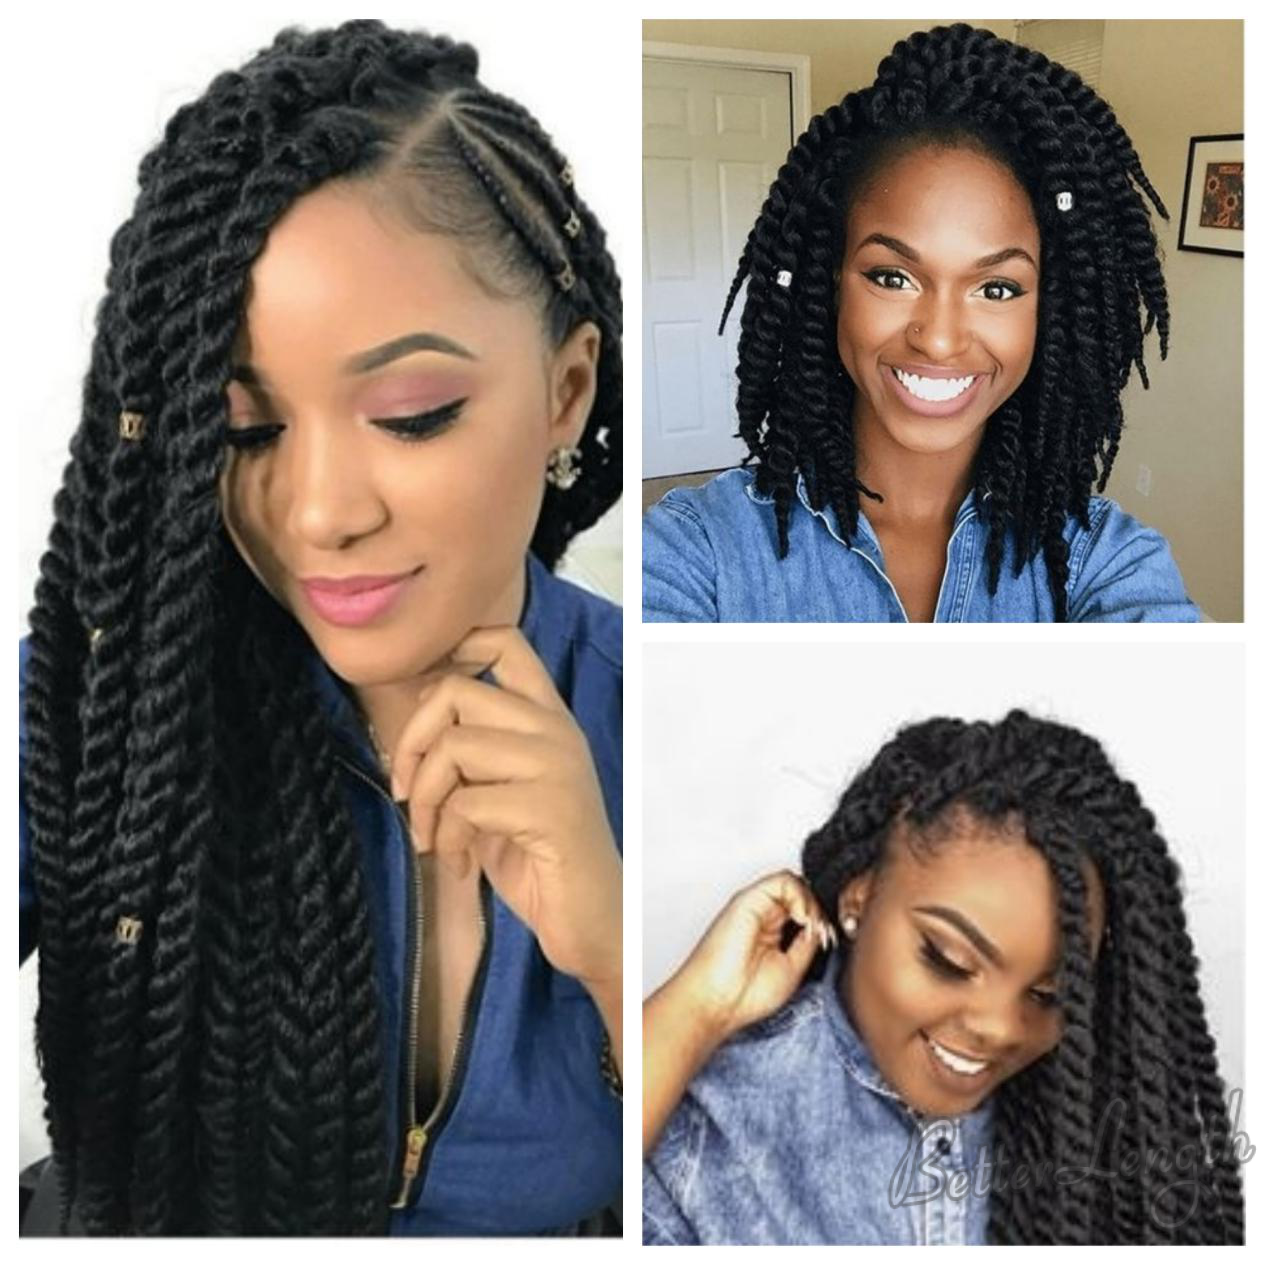 7 Best Protective Hairstyles That Actually Protect Natural Hair For Black Women Braids For Black Hair Natural Hair Styles Easy Protective Hairstyles